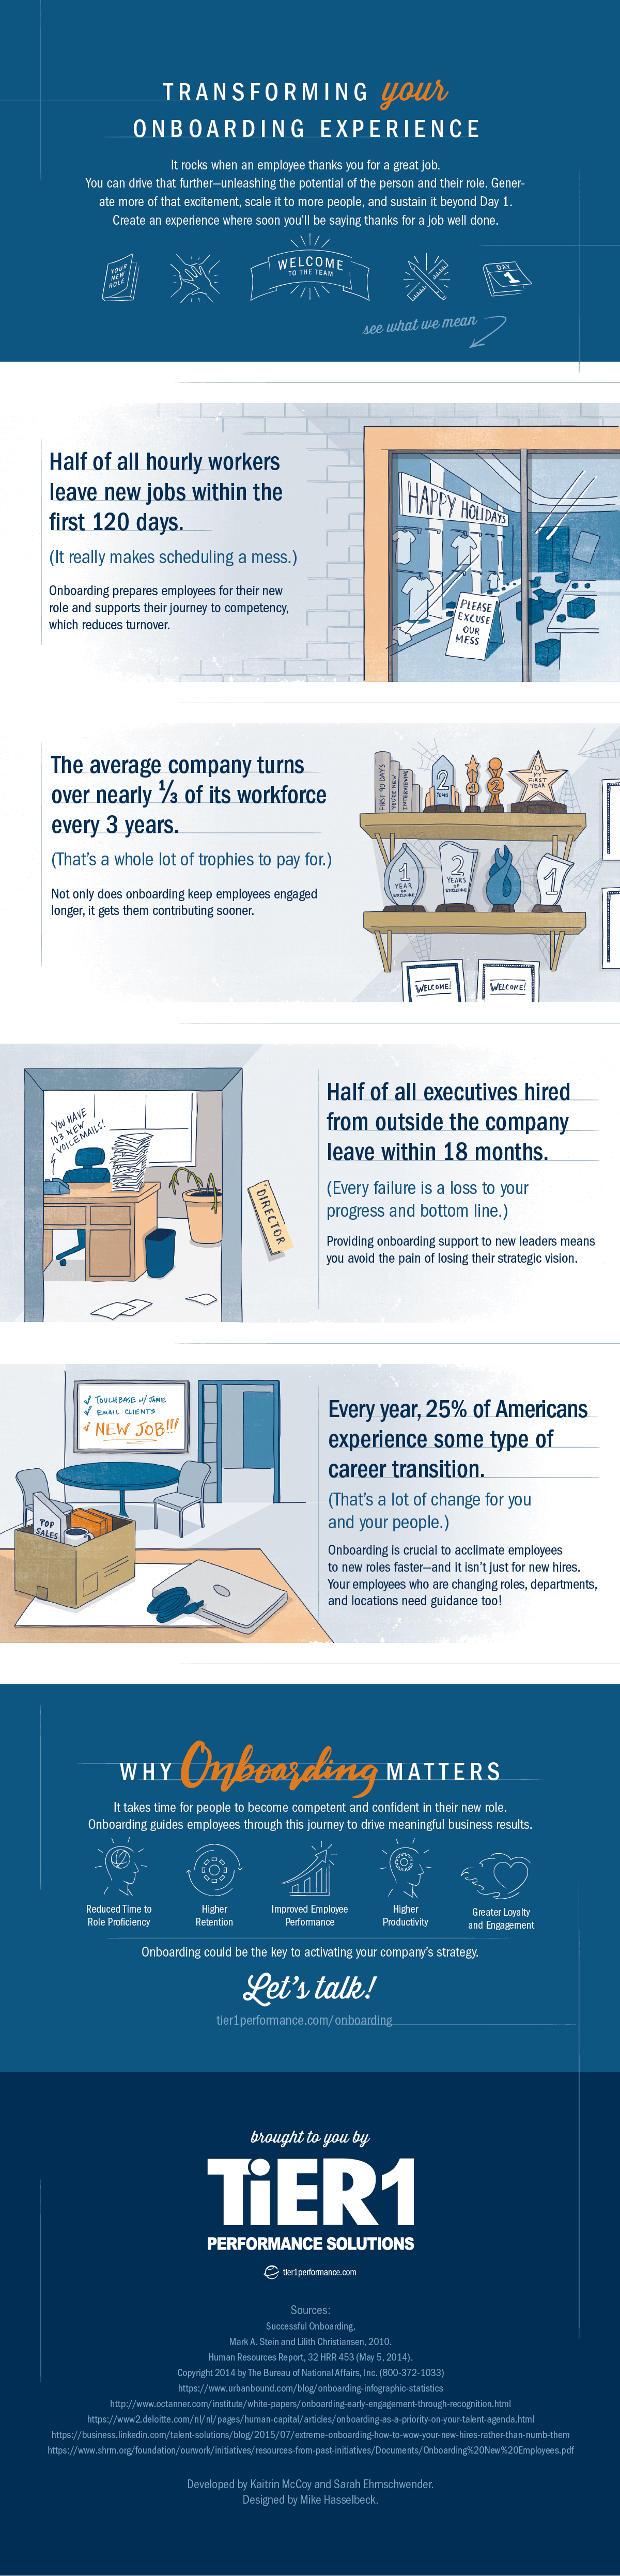 Infographic on the onboarding experience